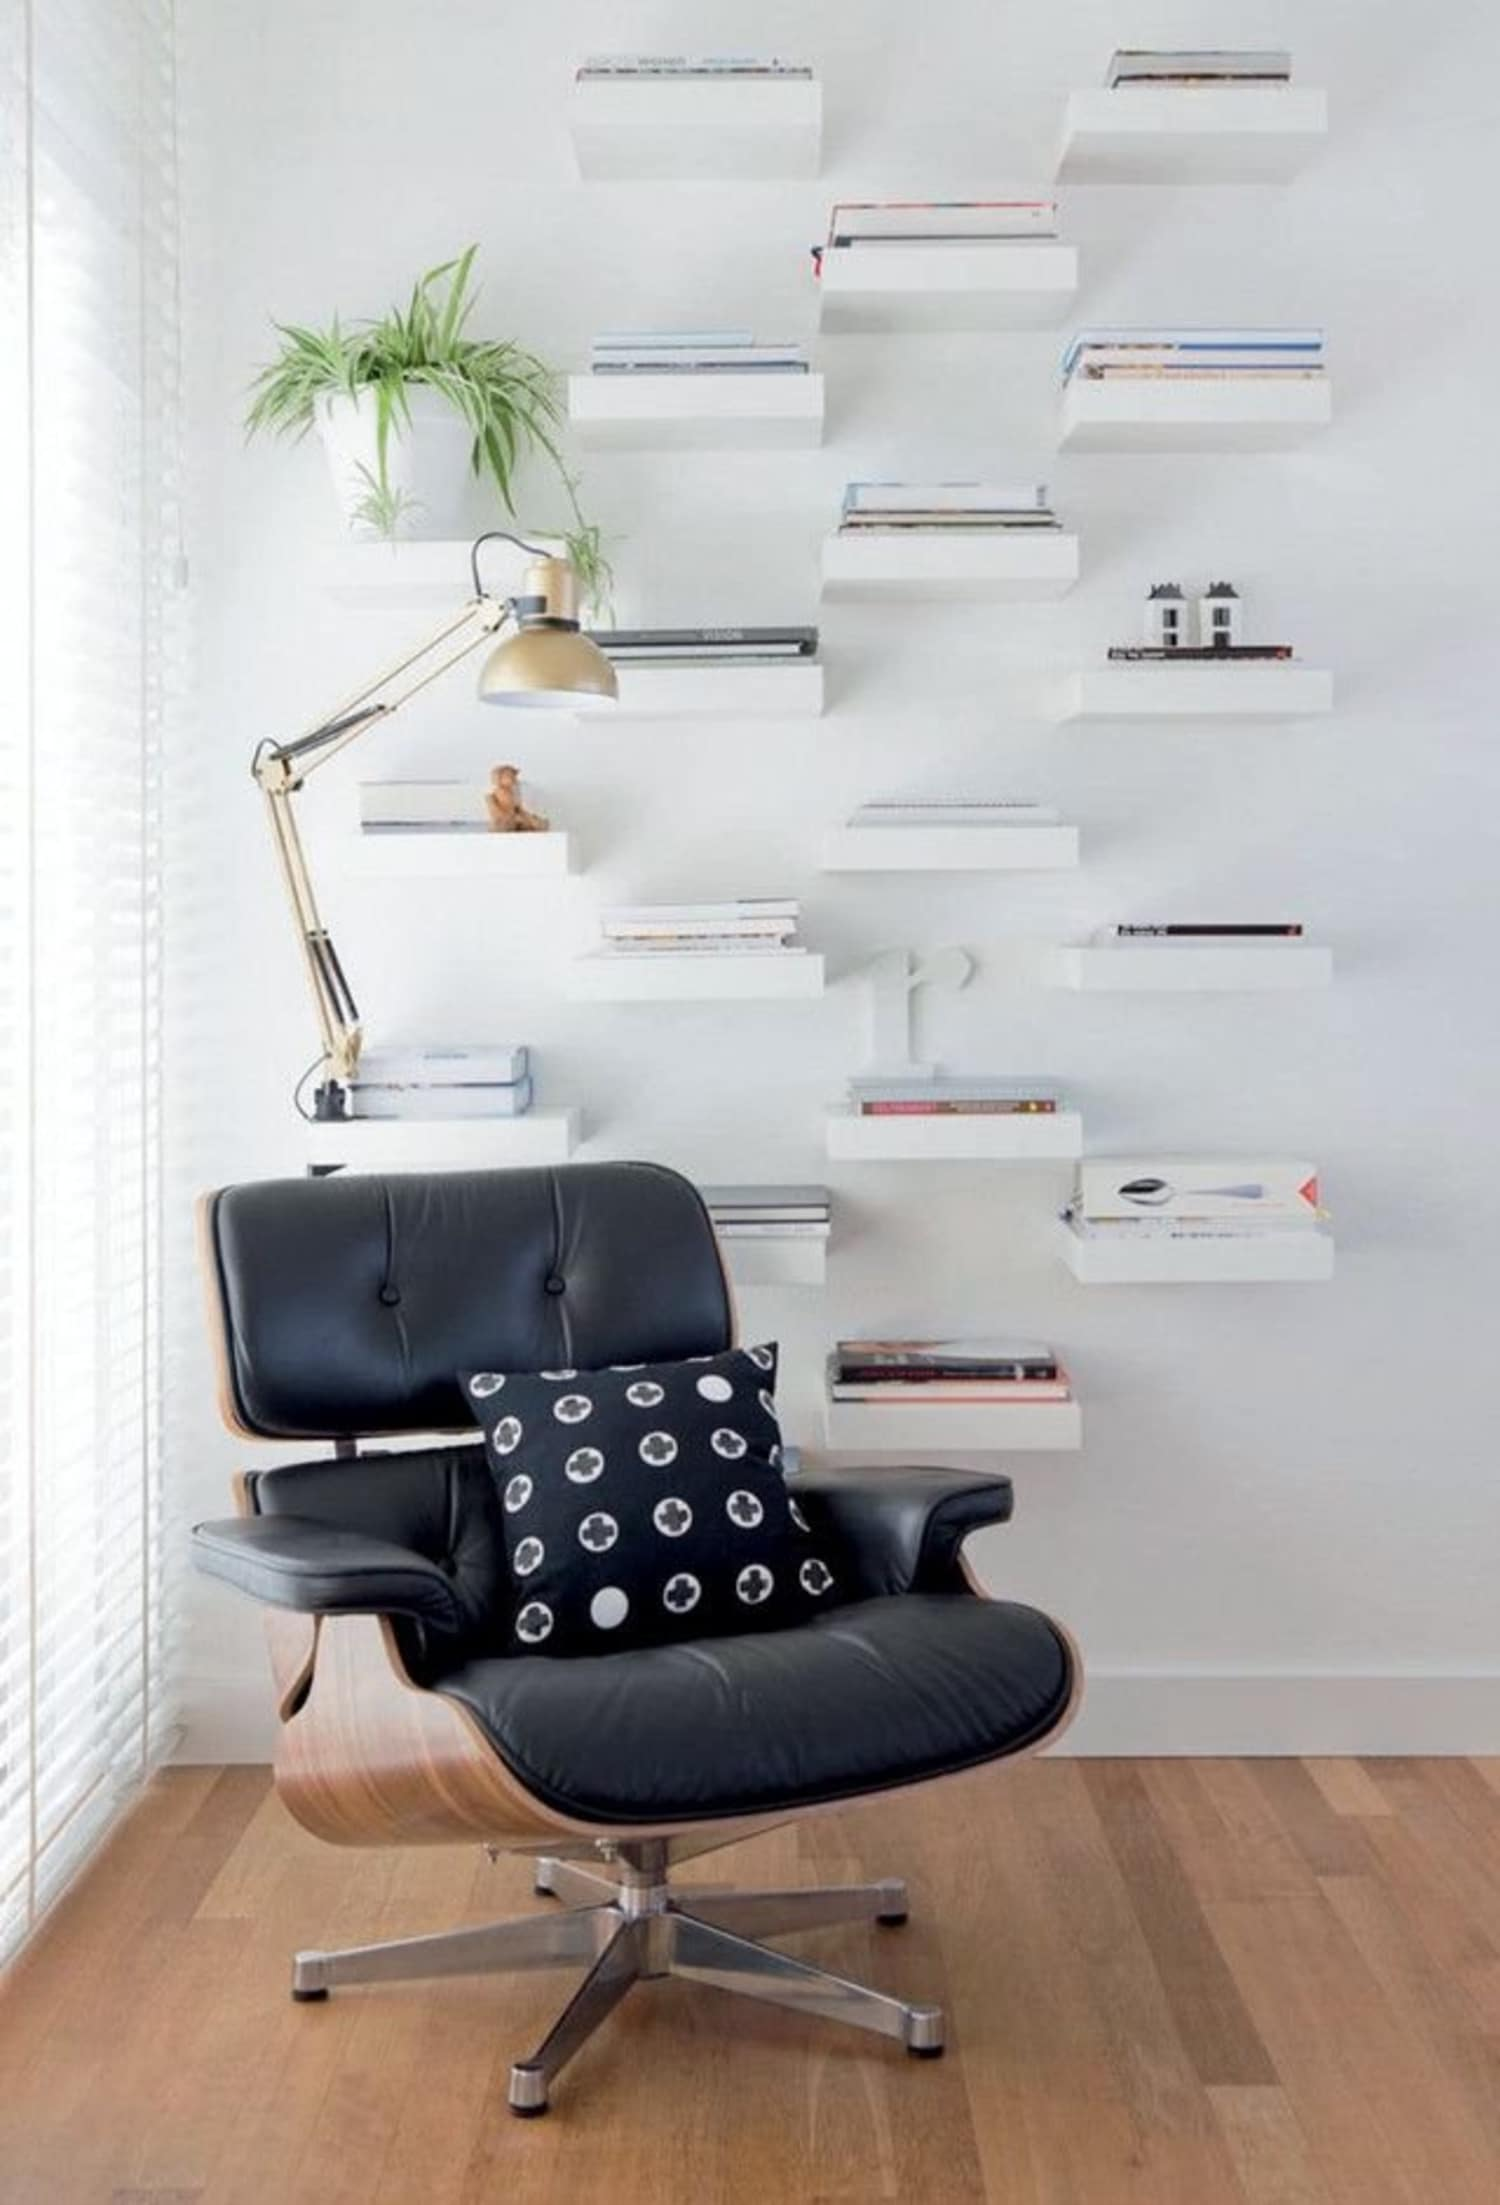 11 Ways to Use IKEA's Lack Shelves in Every Room of the House